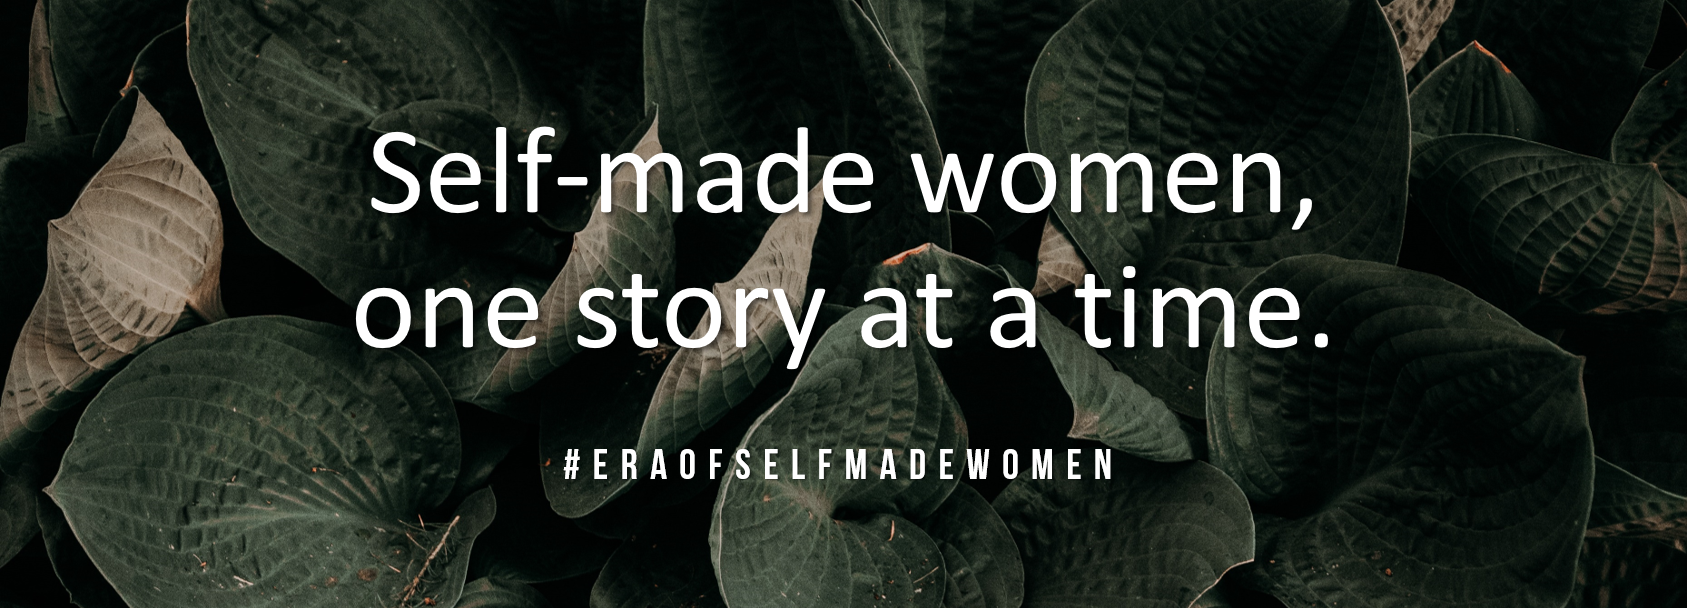 #ERAOFSELFMADEWOMEN || CHAPTER 1 || Sharon